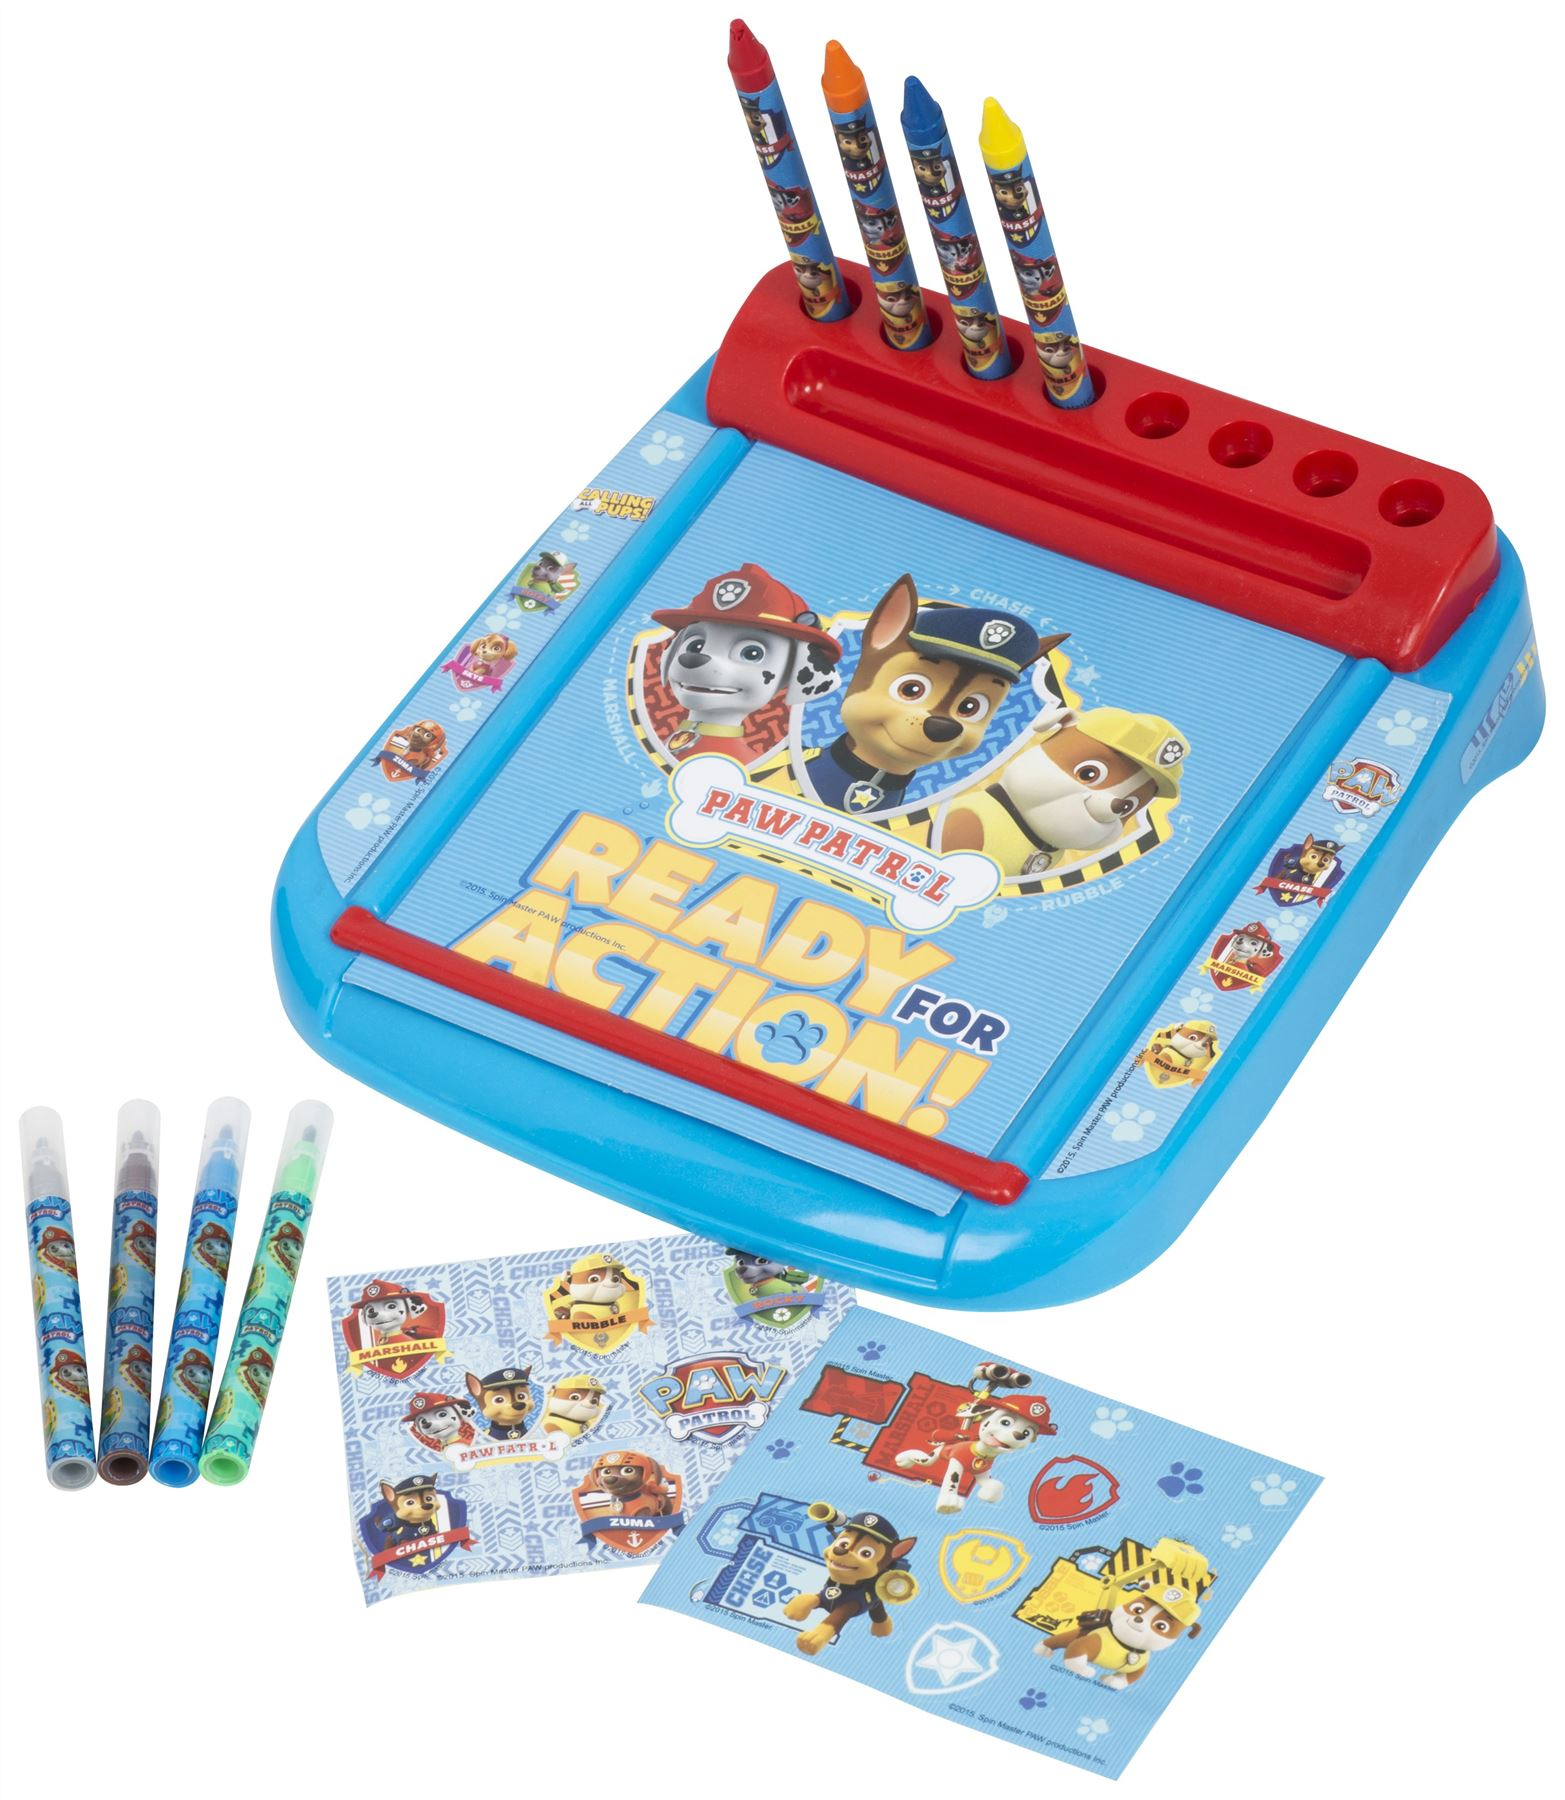 Paw Patrol Roll Amp Go Drawing Marshall Rubble Chase